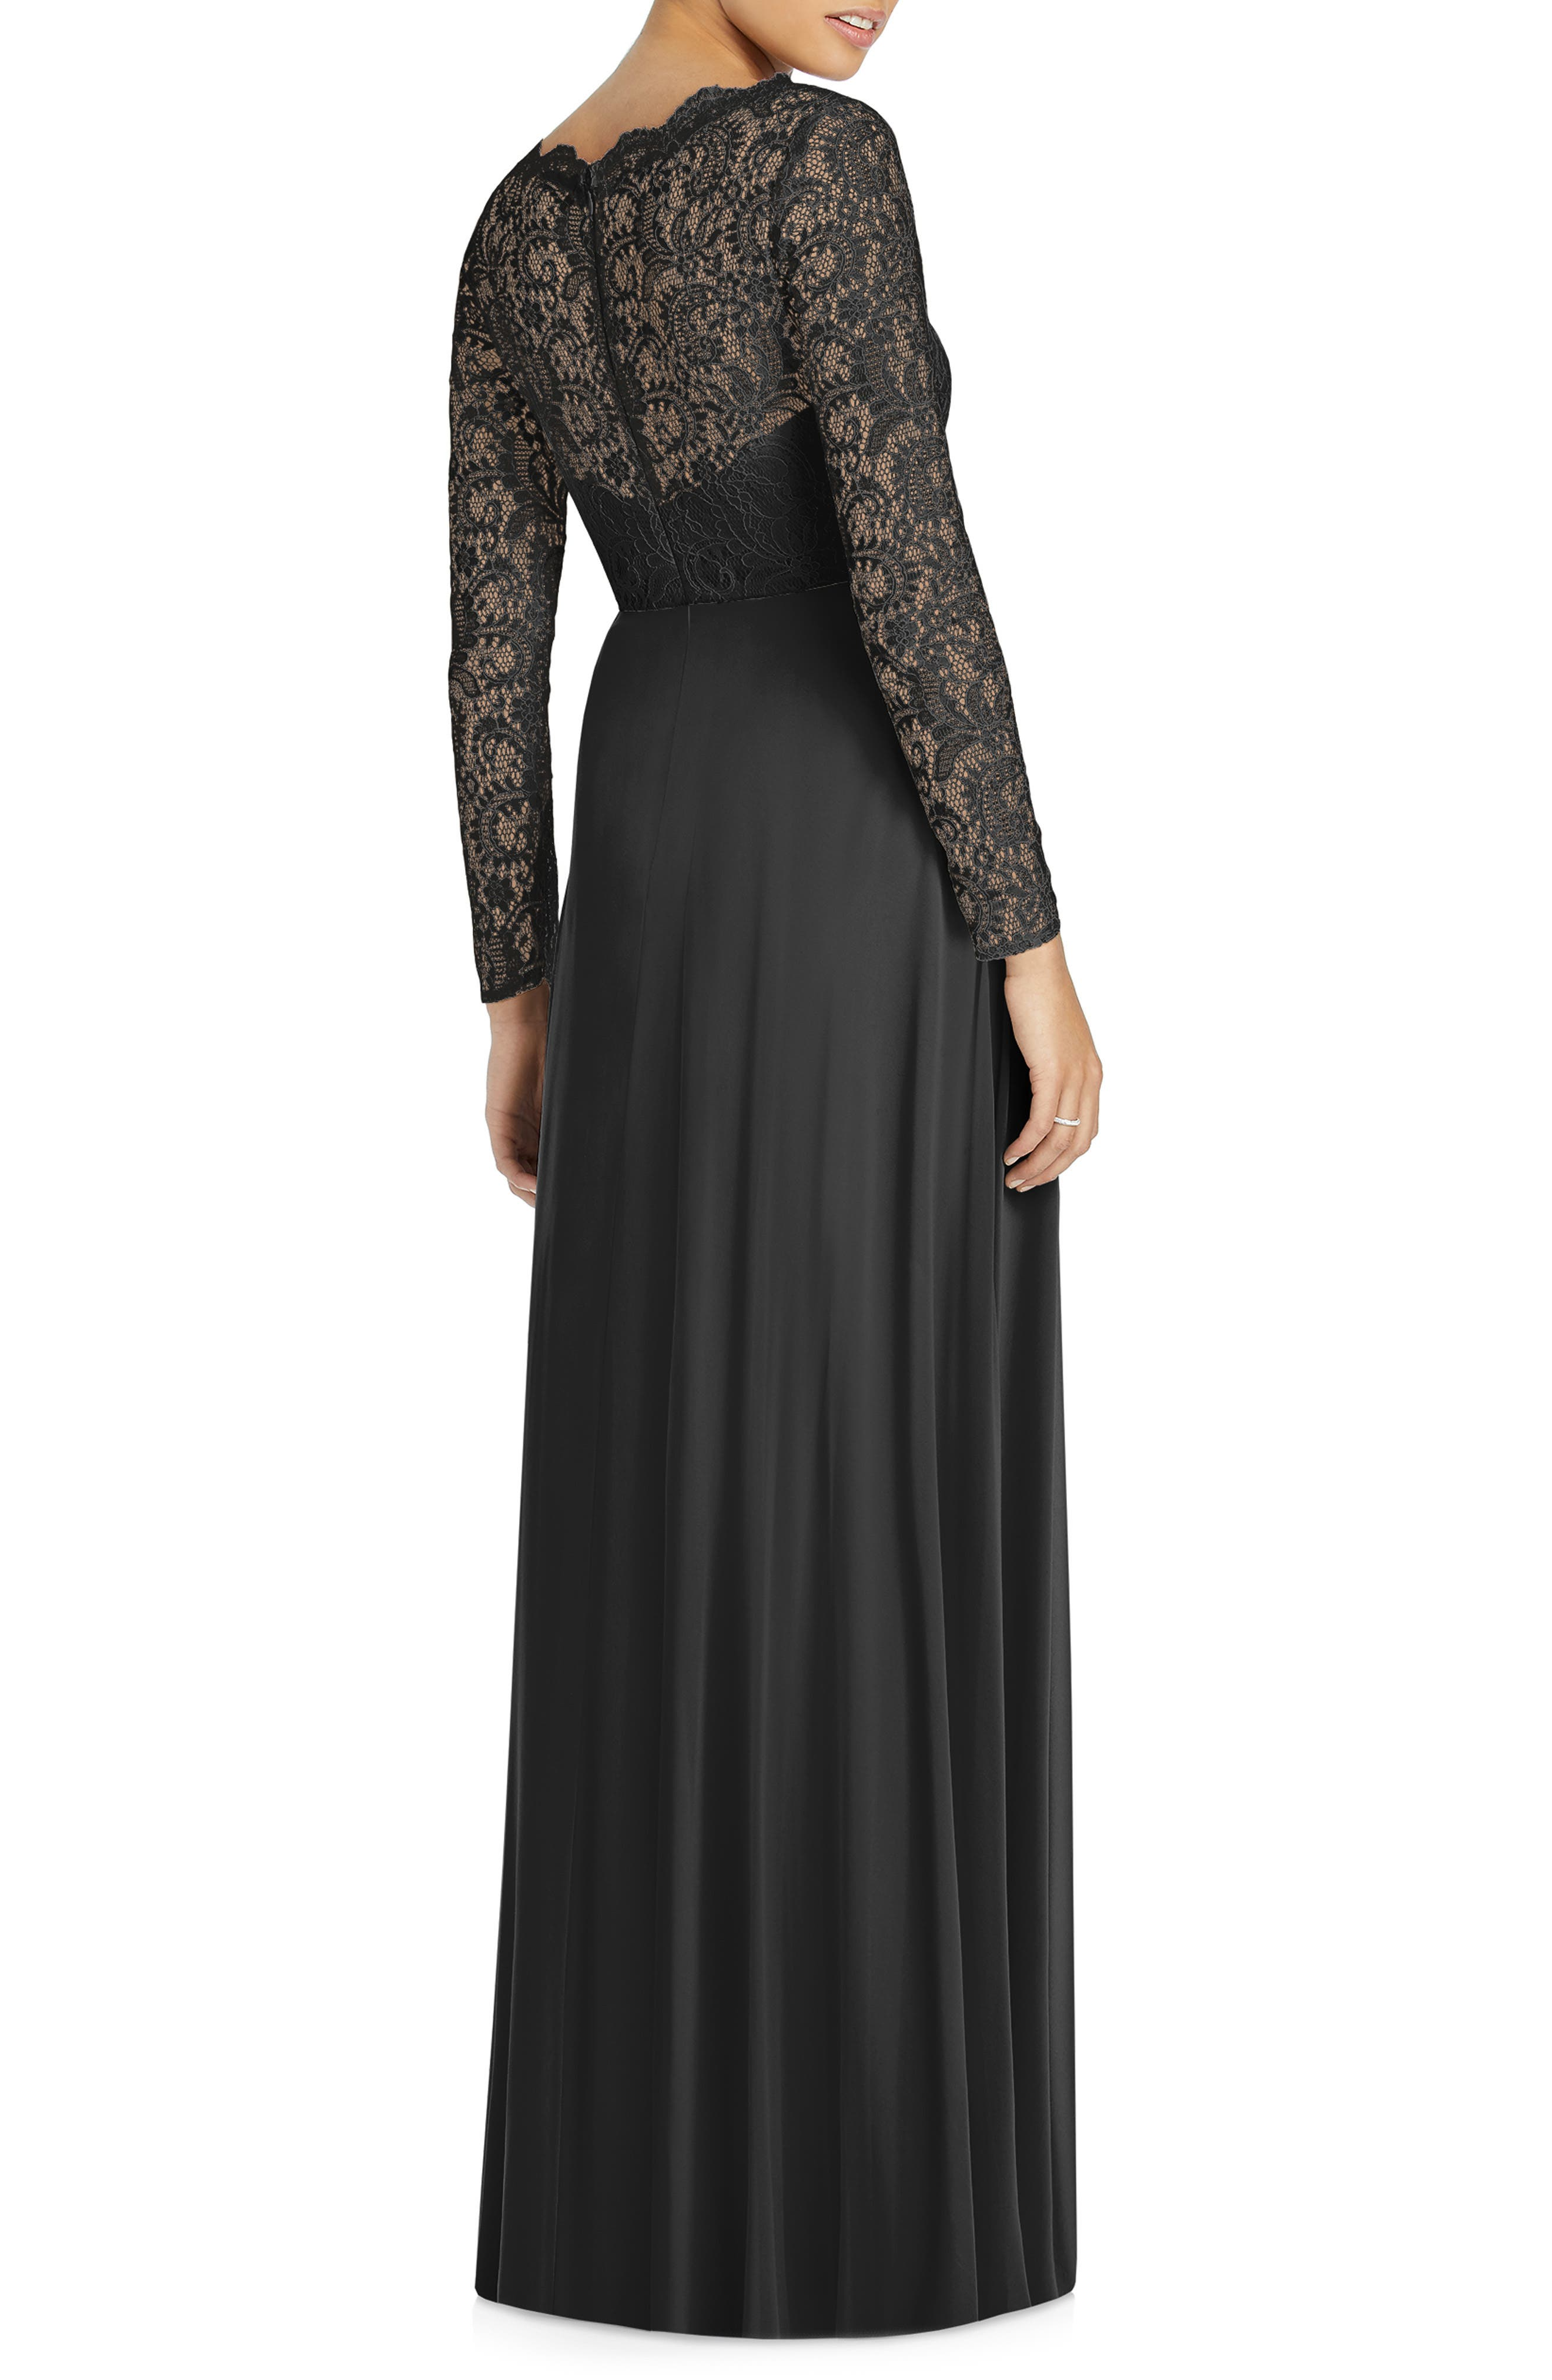 DESSY COLLECTION,                             Long Sleeve Lace & Chiffon Gown,                             Alternate thumbnail 2, color,                             BLACK